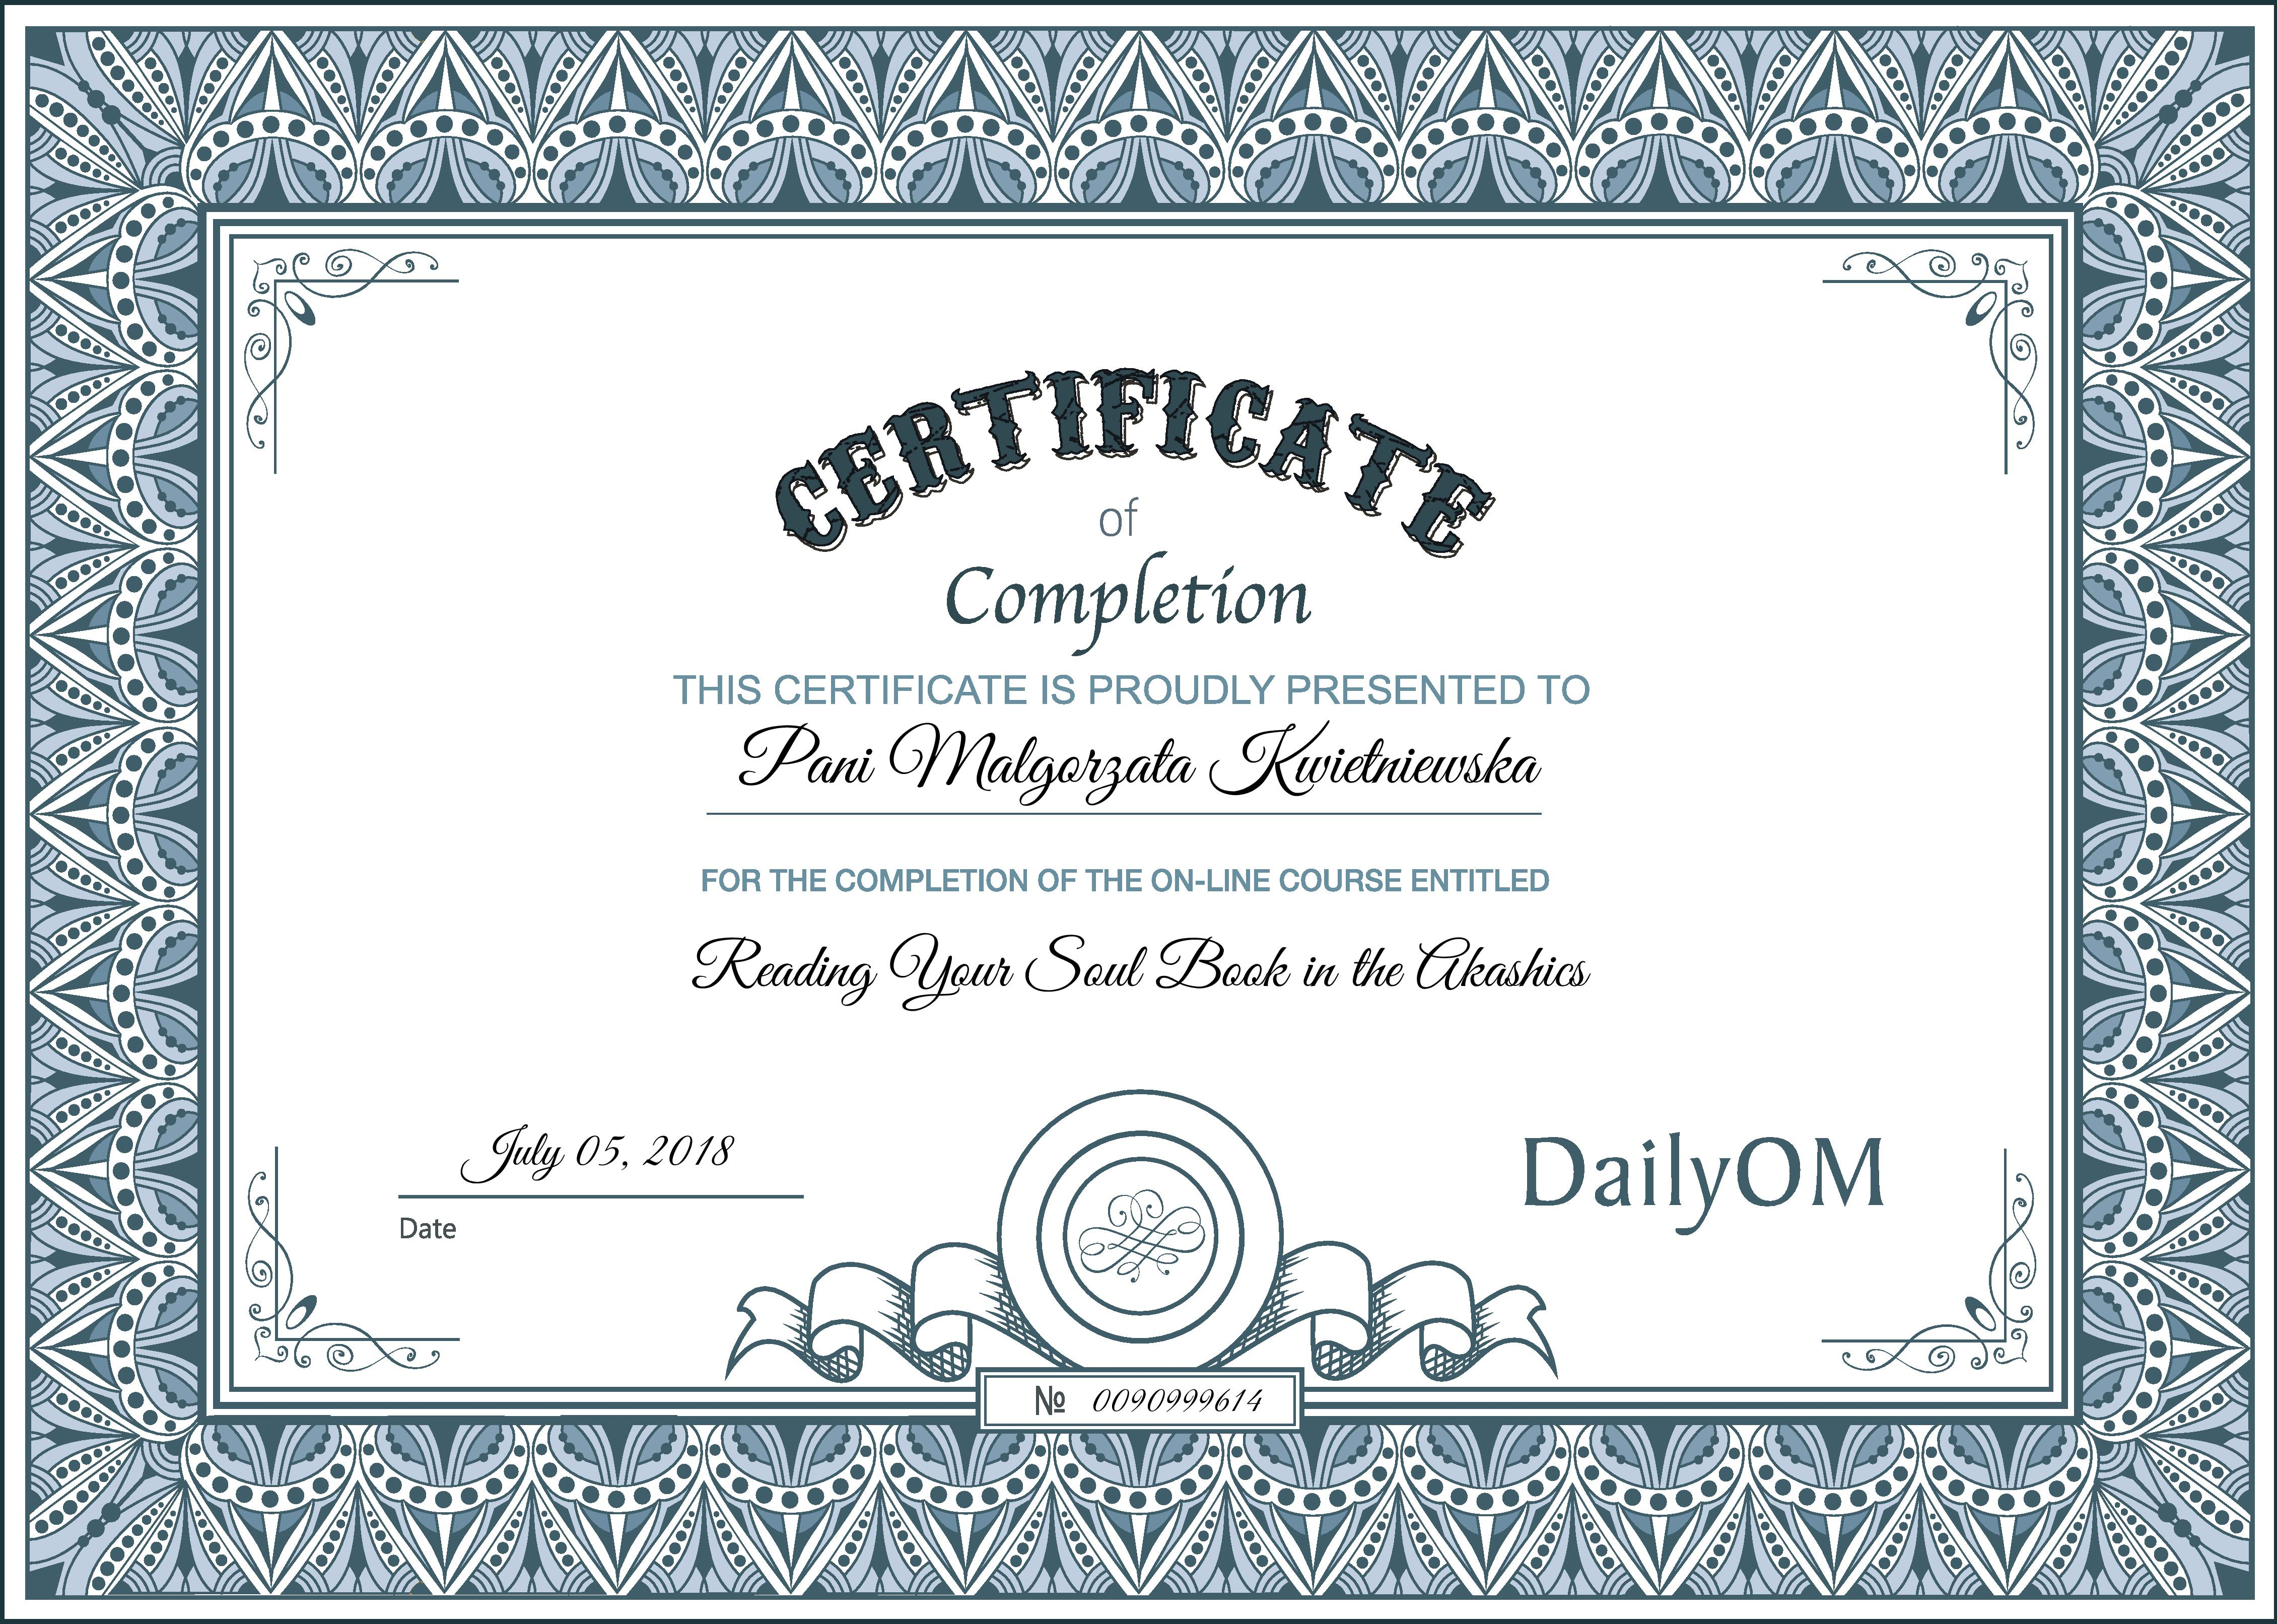 DailyOM_Certificate Soul Book-page-001